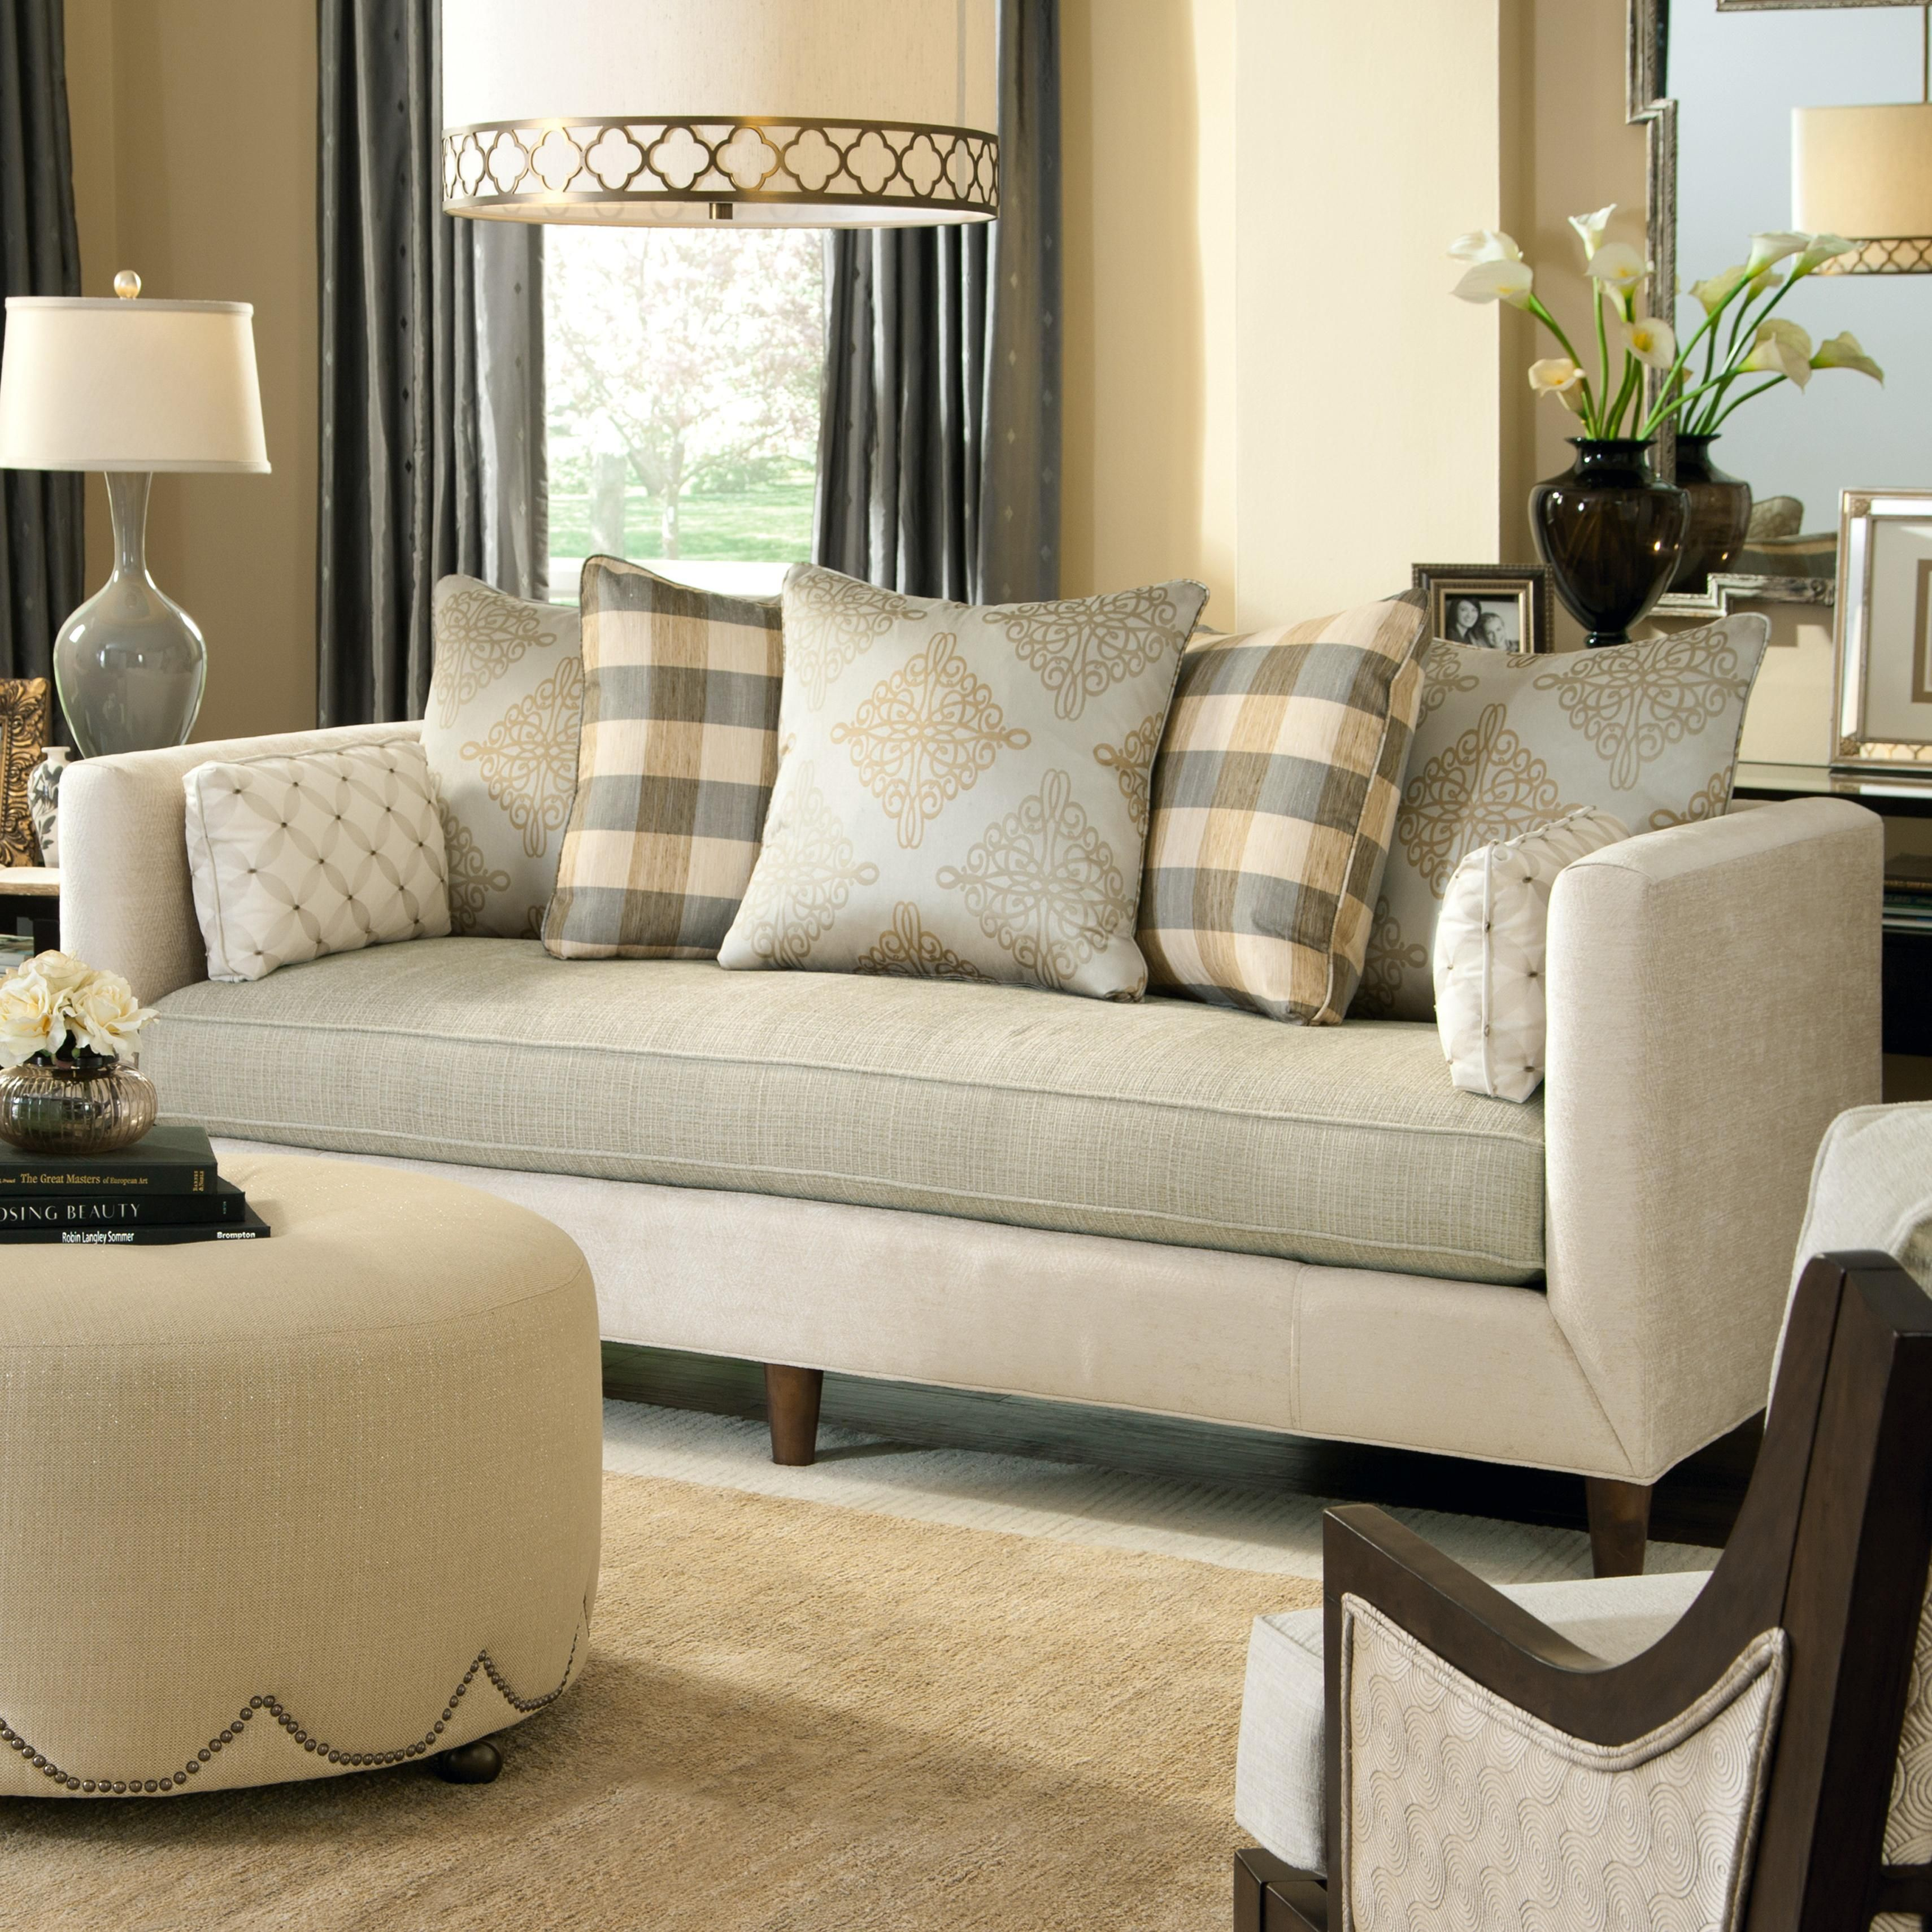 Washable slipcover from Paula Deen Home Collection